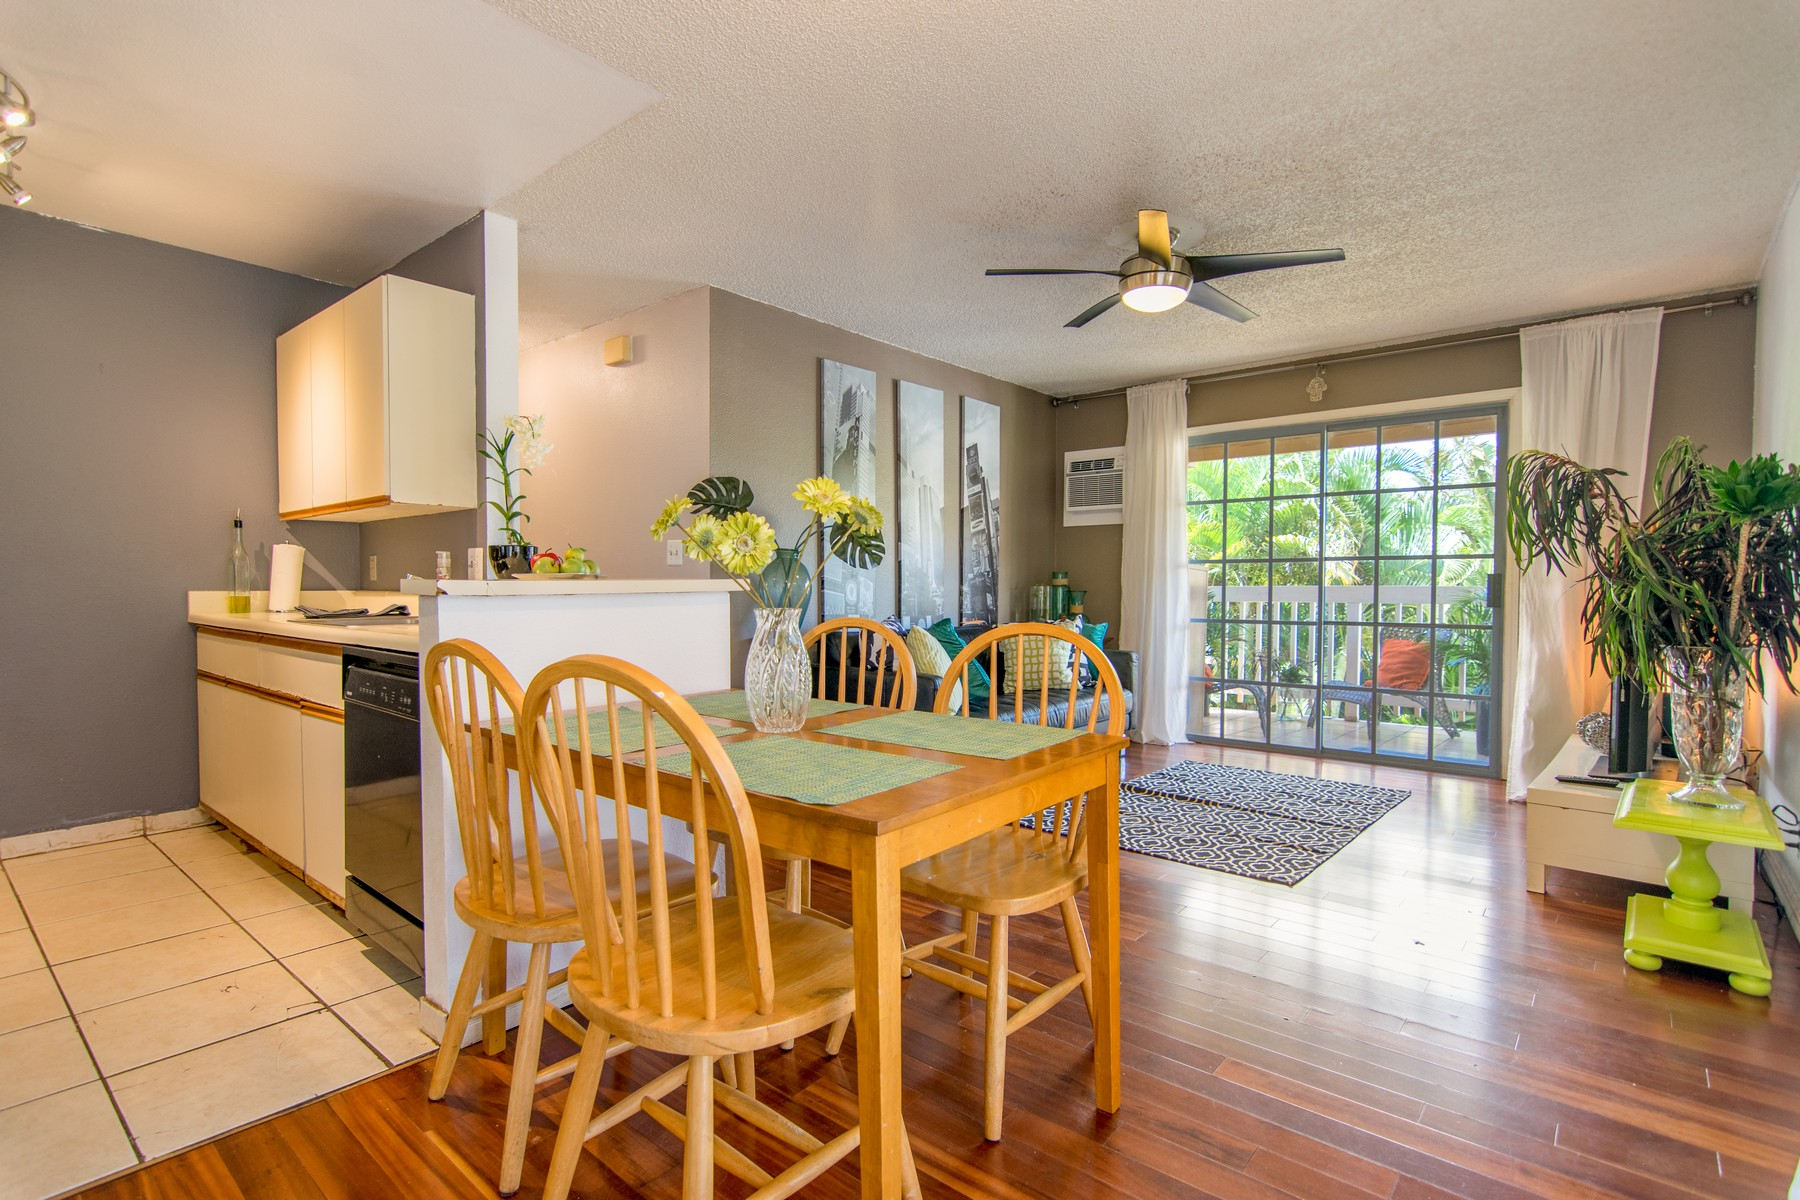 Condominium for Sale at Upgraded Entry Level Condo 140 Uwapo Road, Kihei Villages 34-203 Kihei, Hawaii 96753 United States